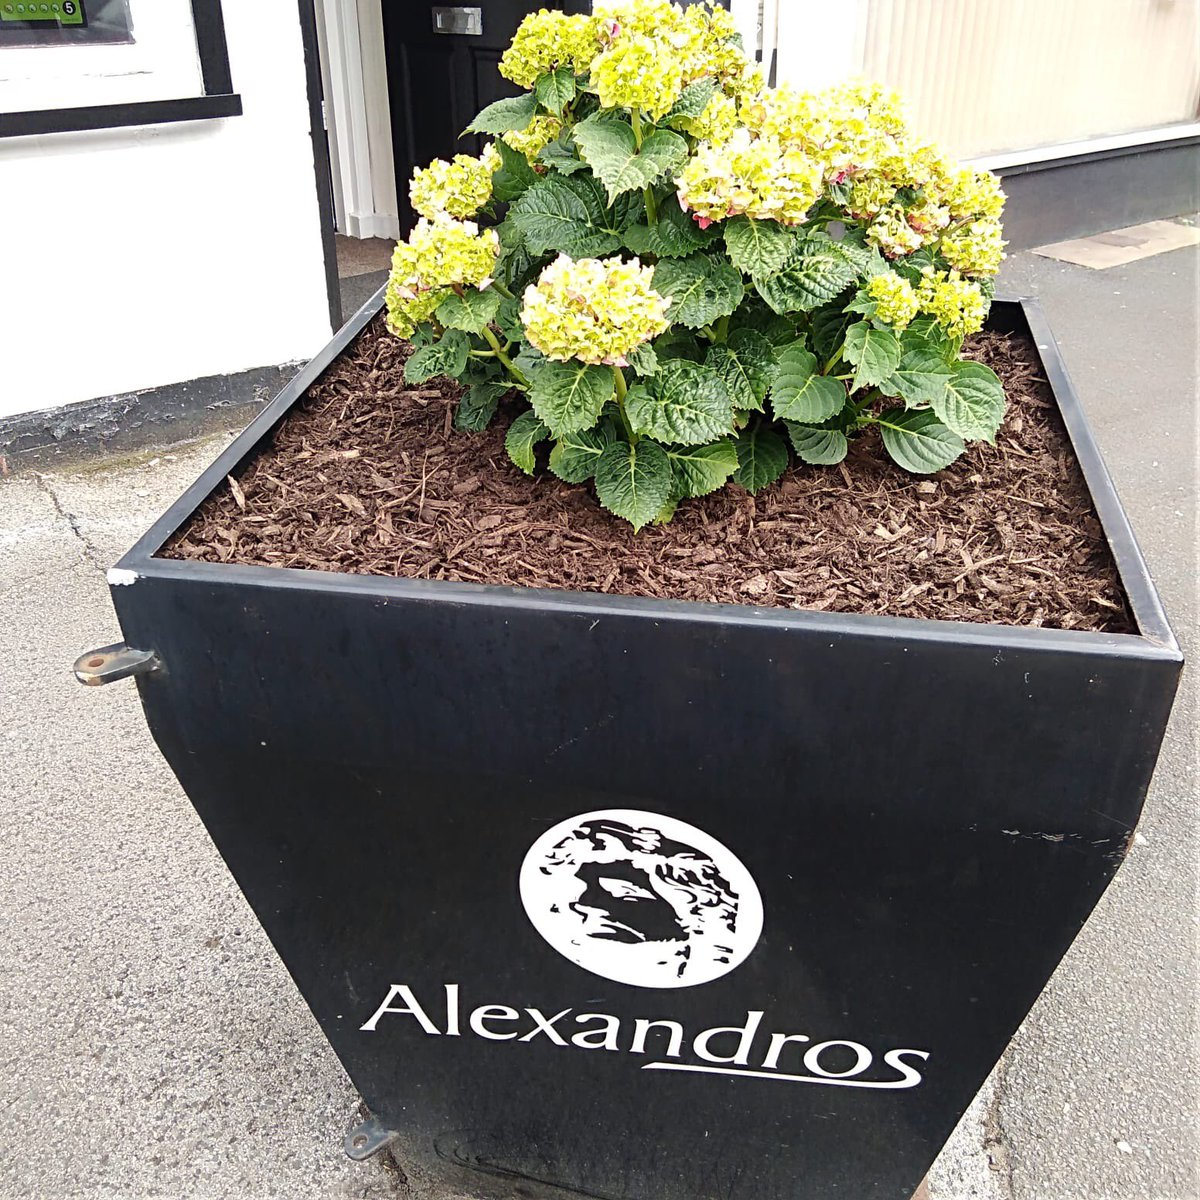 Always nice to see local businesses brighten up their premises with plants, these new ones at Alexandros look nice next to the plants from @MCCWythenshawe And we have a new bin.